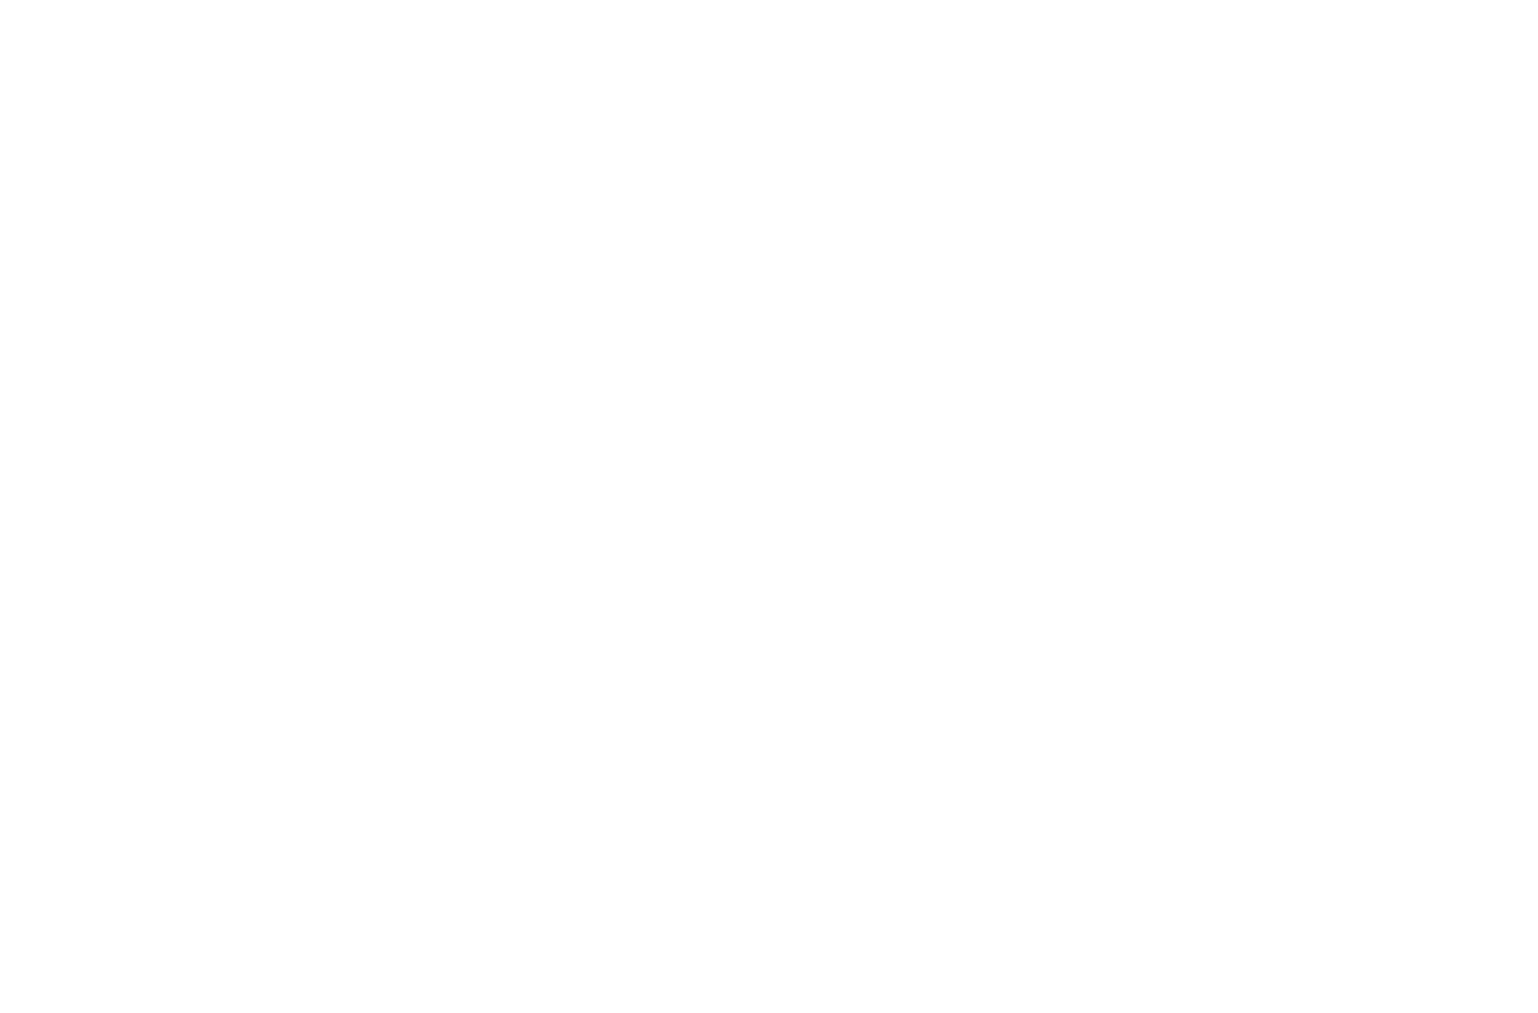 Contact & Accès Stella immobilier Agence immobilière